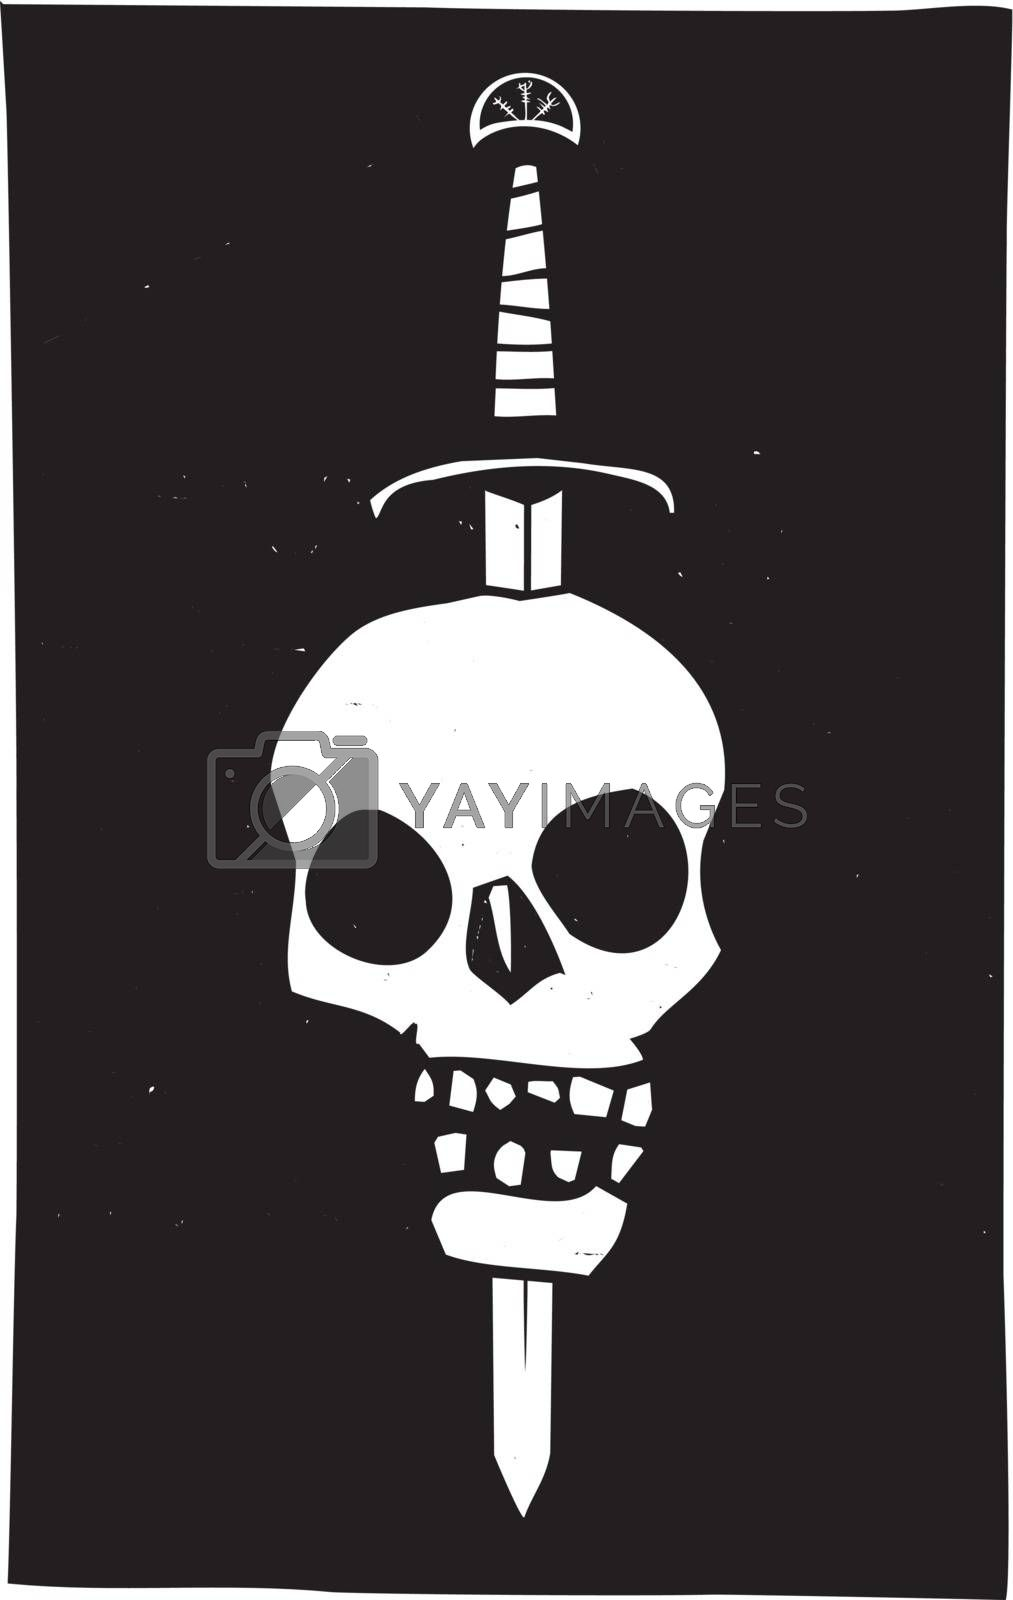 Woodcut style image of a human skull impaled on a sword on a black background.